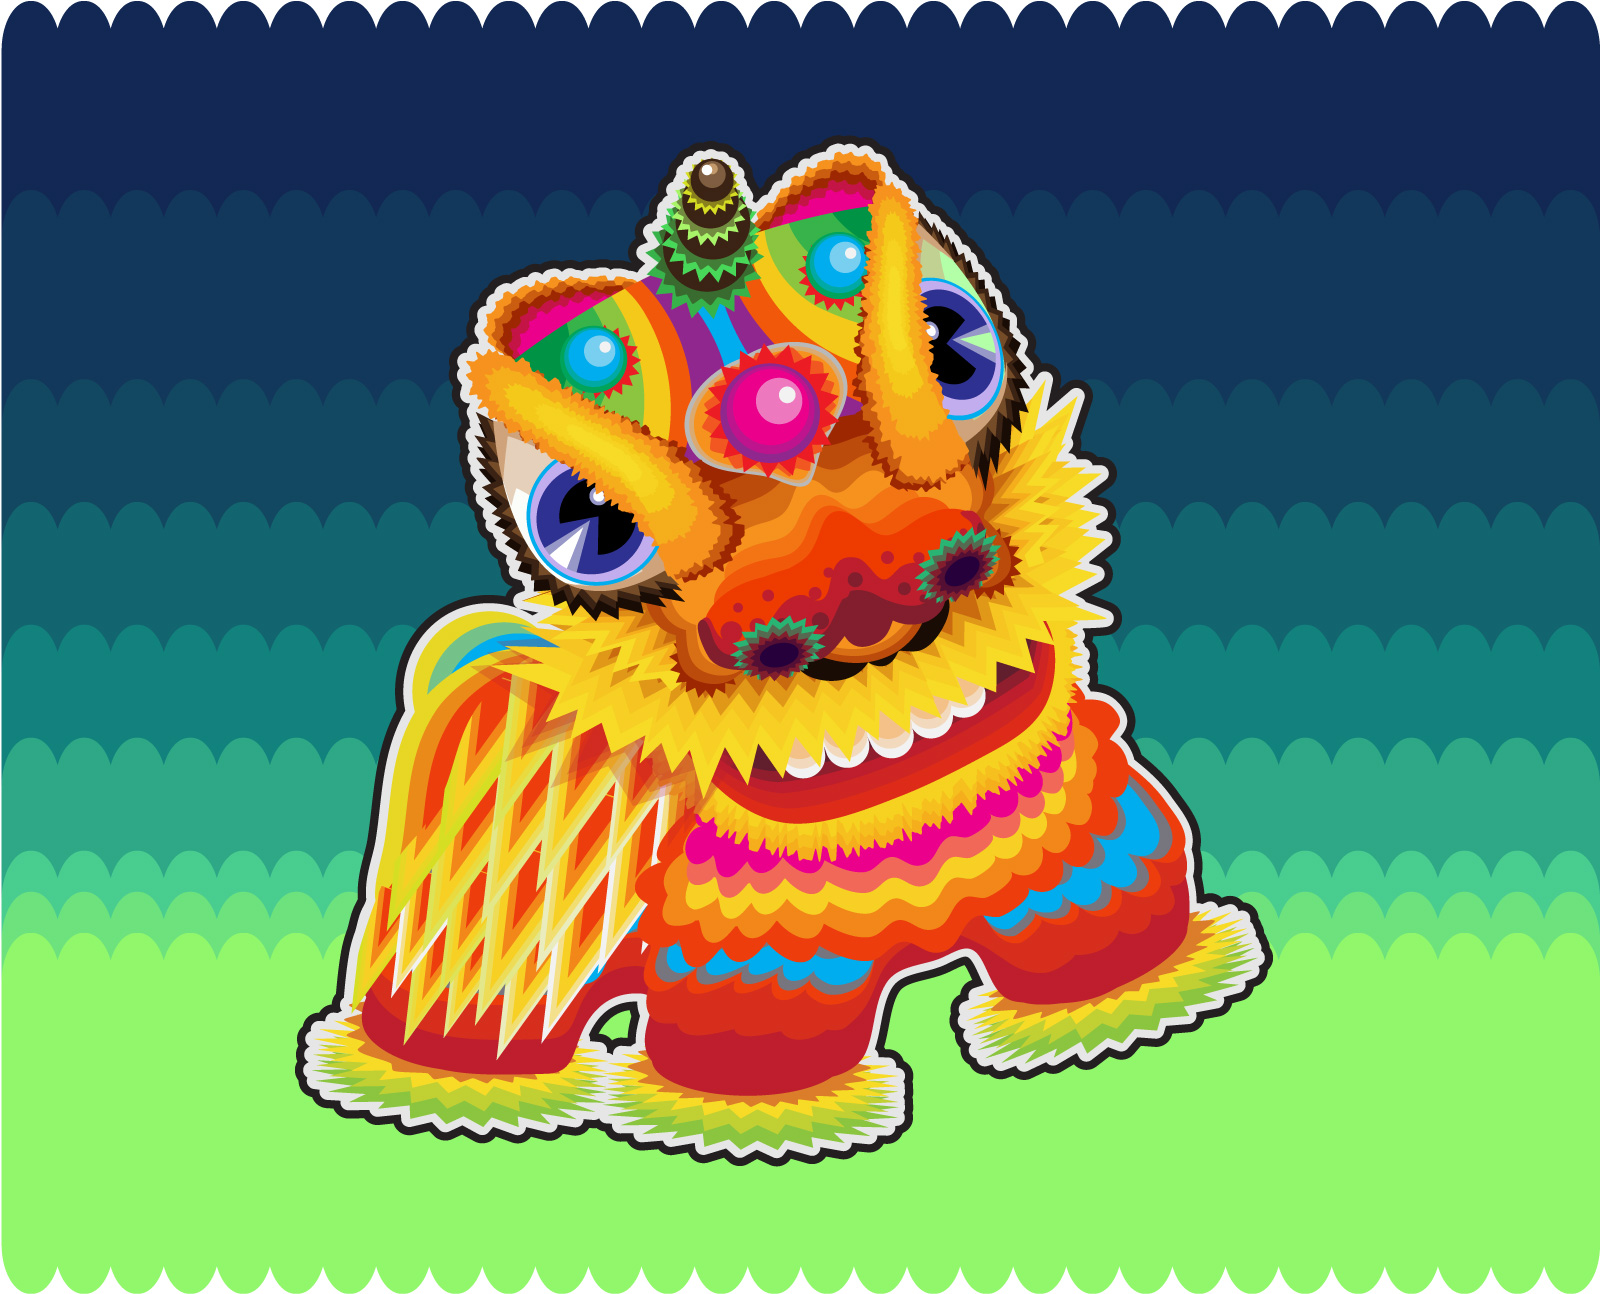 chinesefontdesign.com 2017 03 28 09 13 05 Chinese traditional lion dance vector graphics    China Illustrations Vectors AI ESP Free Download Lion dance Vectors Lion dance ai